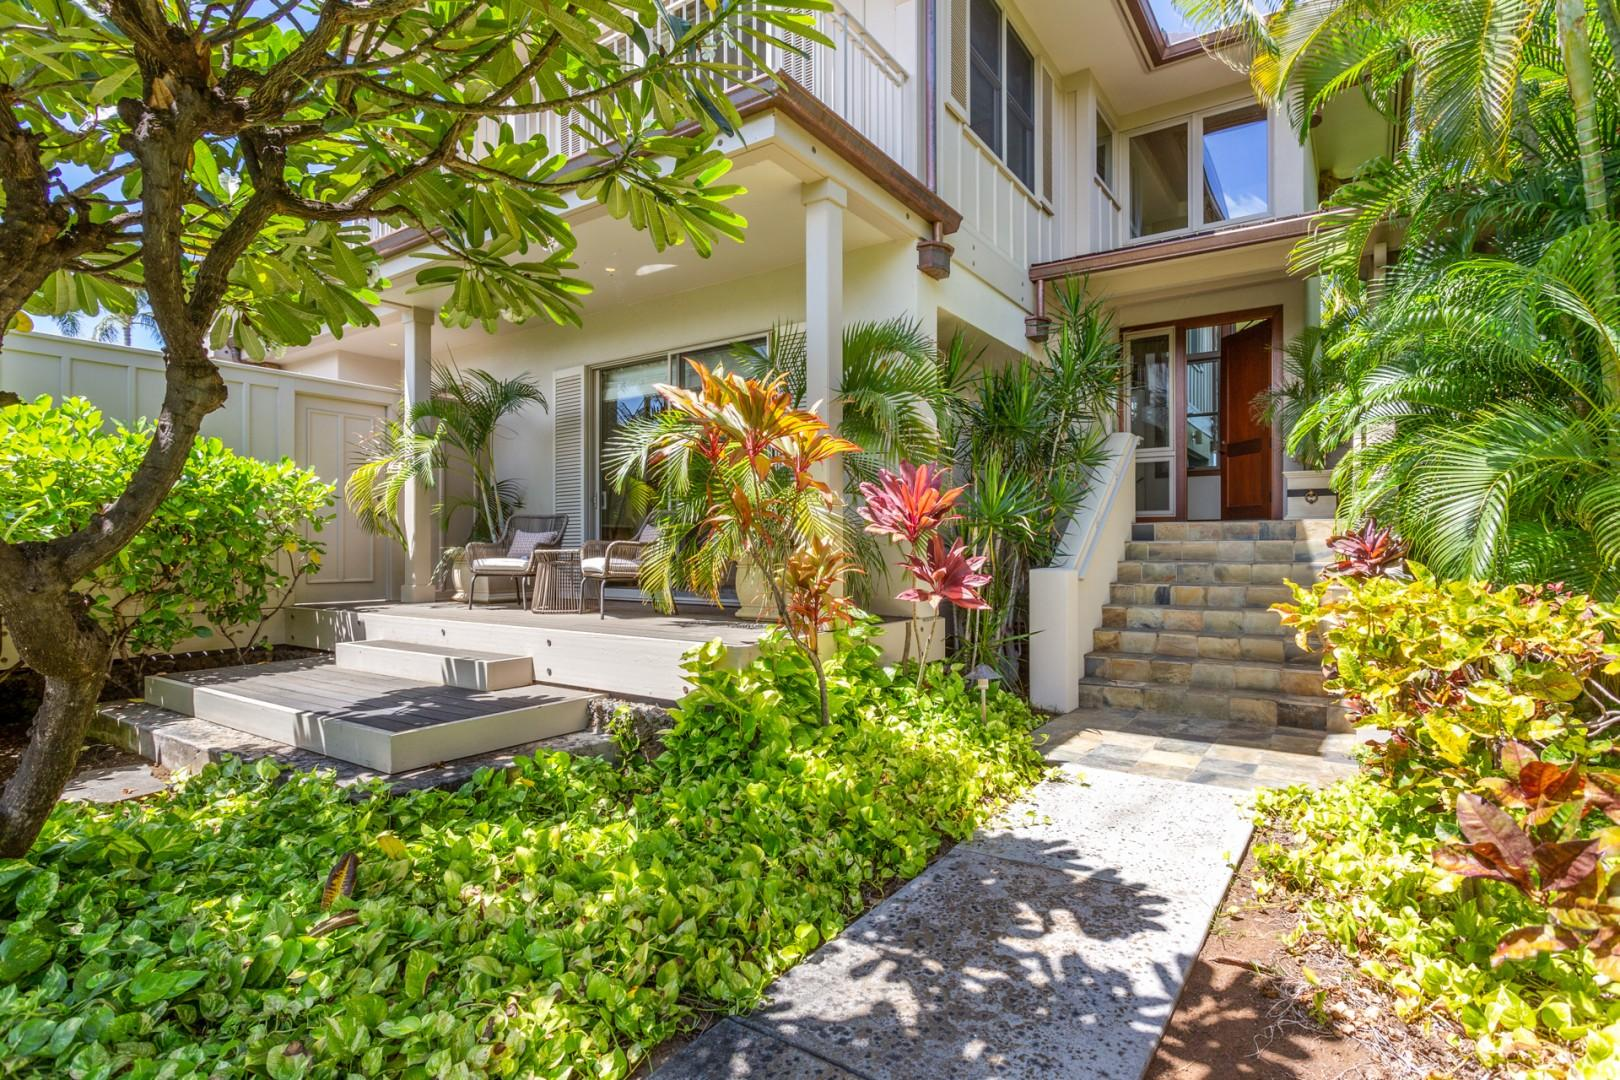 Walkway to private entrance with lush tropical landscaping.